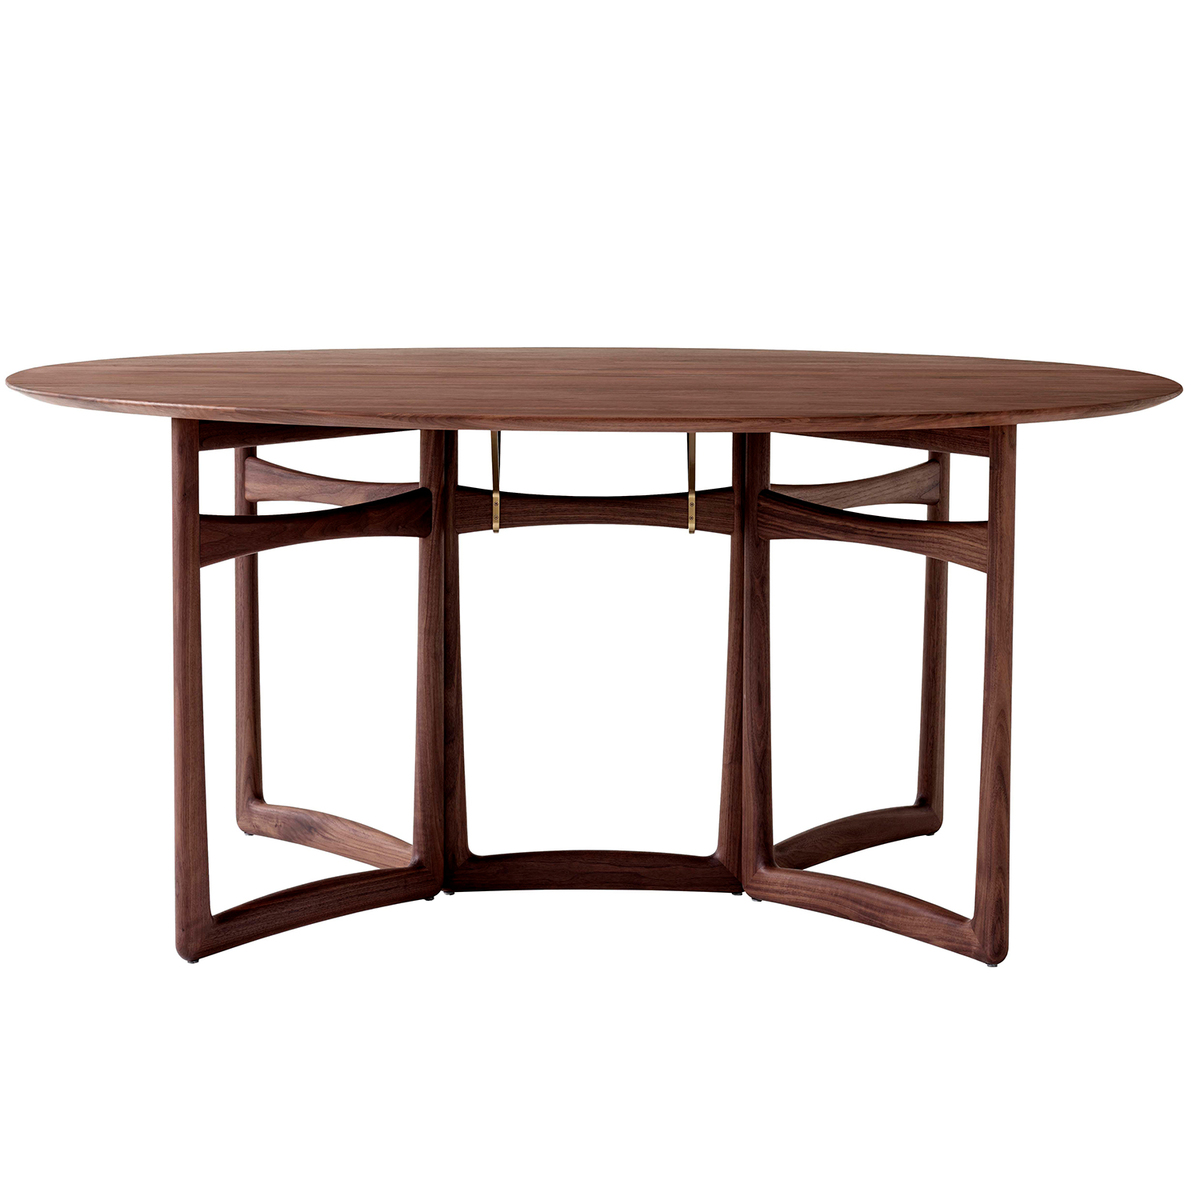 &Tradition Drop Leaf HM6 dining table, oiled walnut from &Tradition